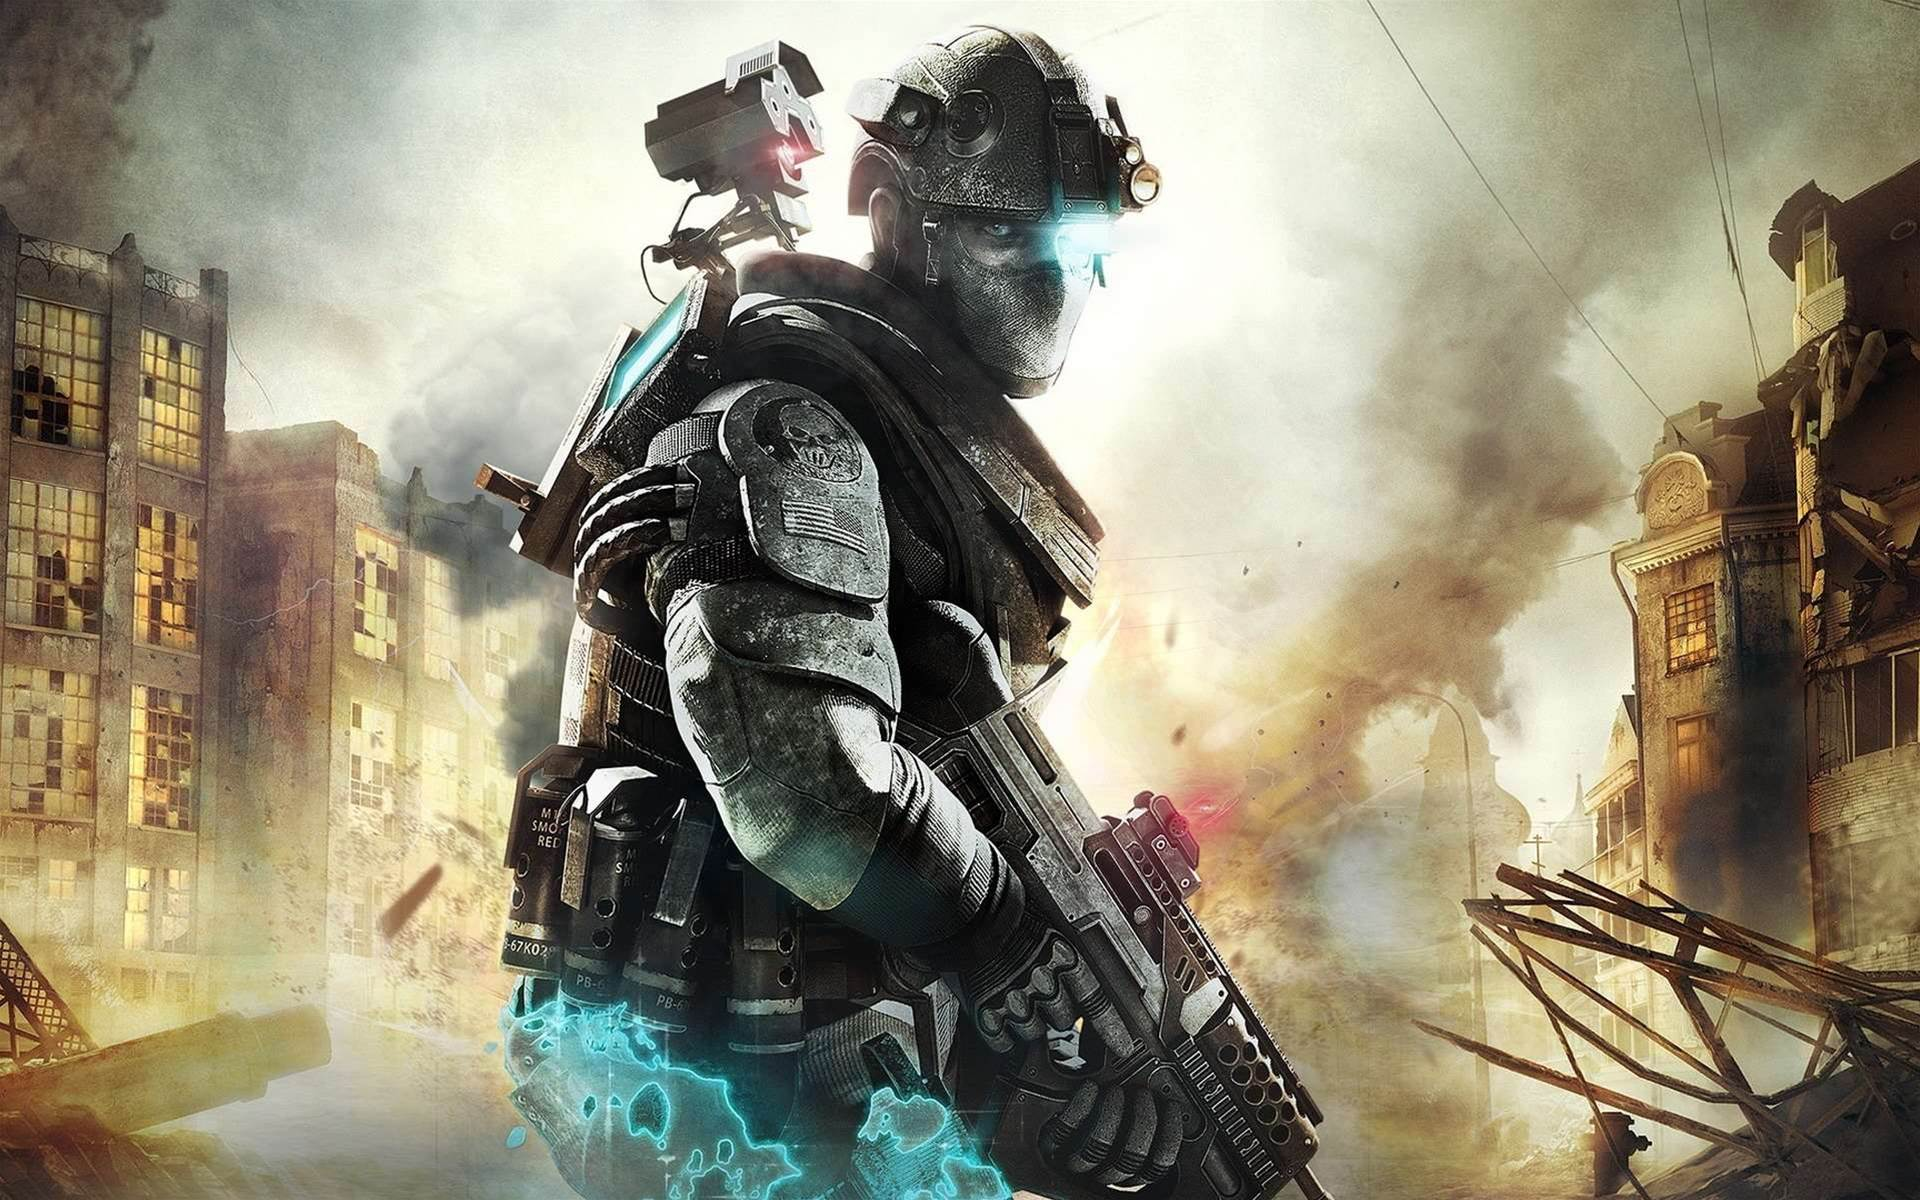 Missed Ghost Recon: Alpha? Catch it this week on Australian TV